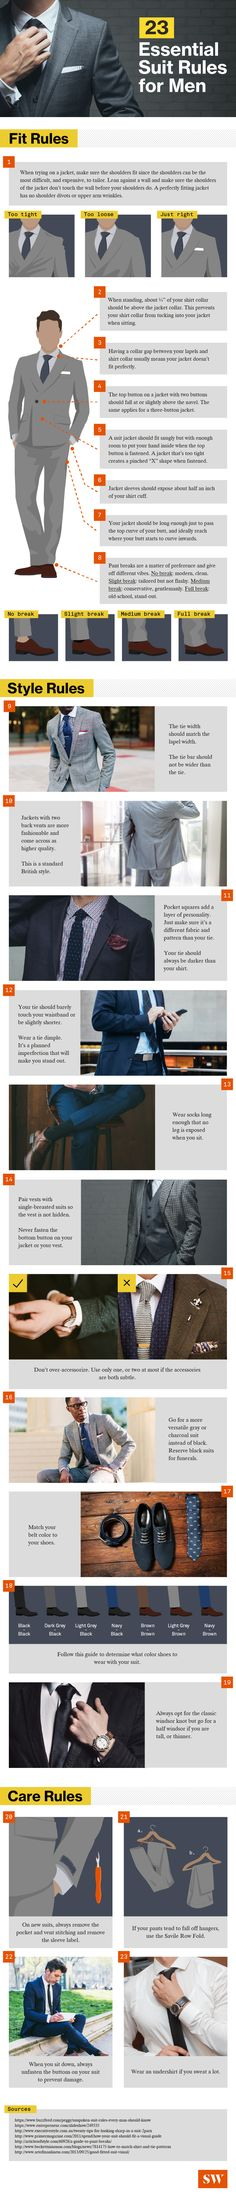 23 Essential Suit Rules for Men - Imgur